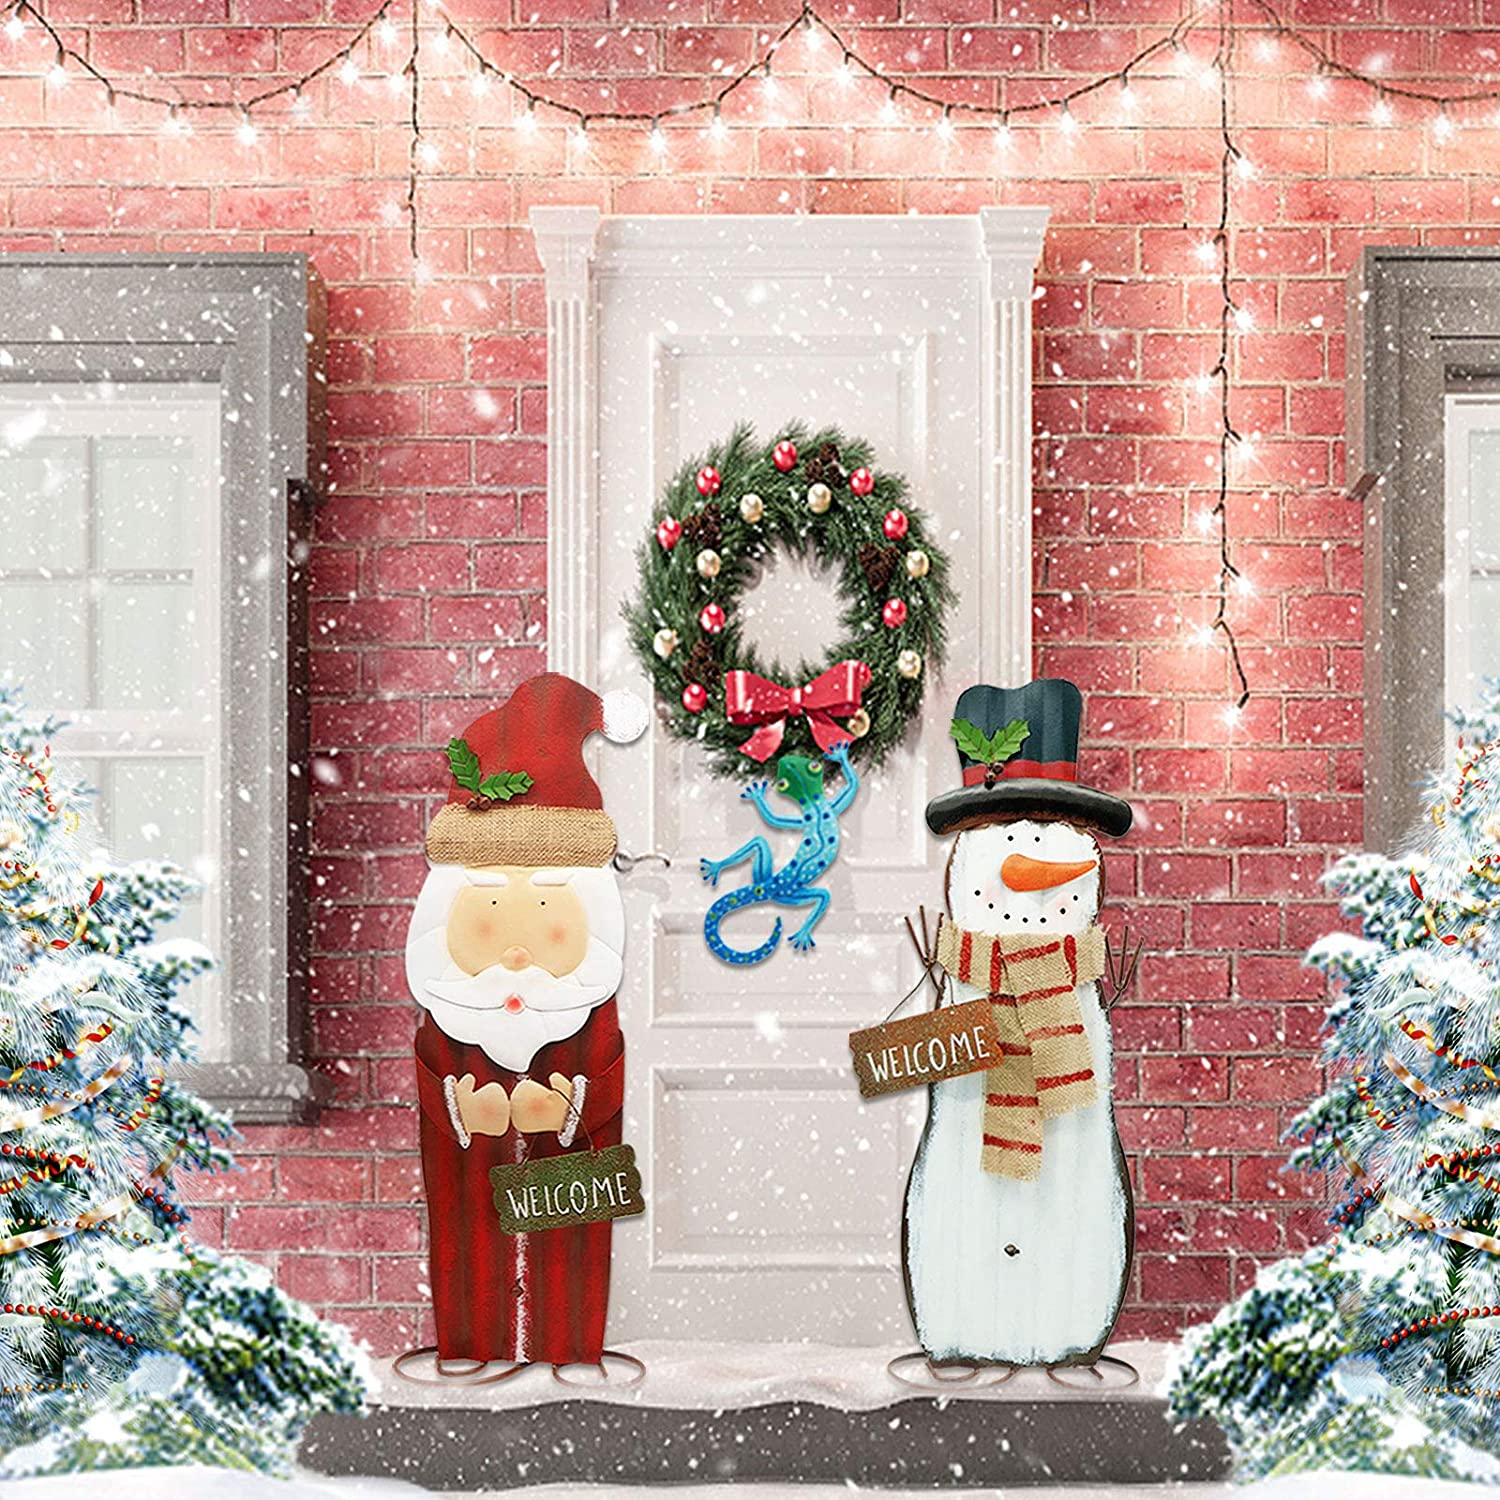 TemwJa 2Ft Christmas Decorations Metal Handicraft Snowman&Santa Xmas Yard Sign Decors Iron Craftmanship Gifts Indoor(2 Pack with Gecko)